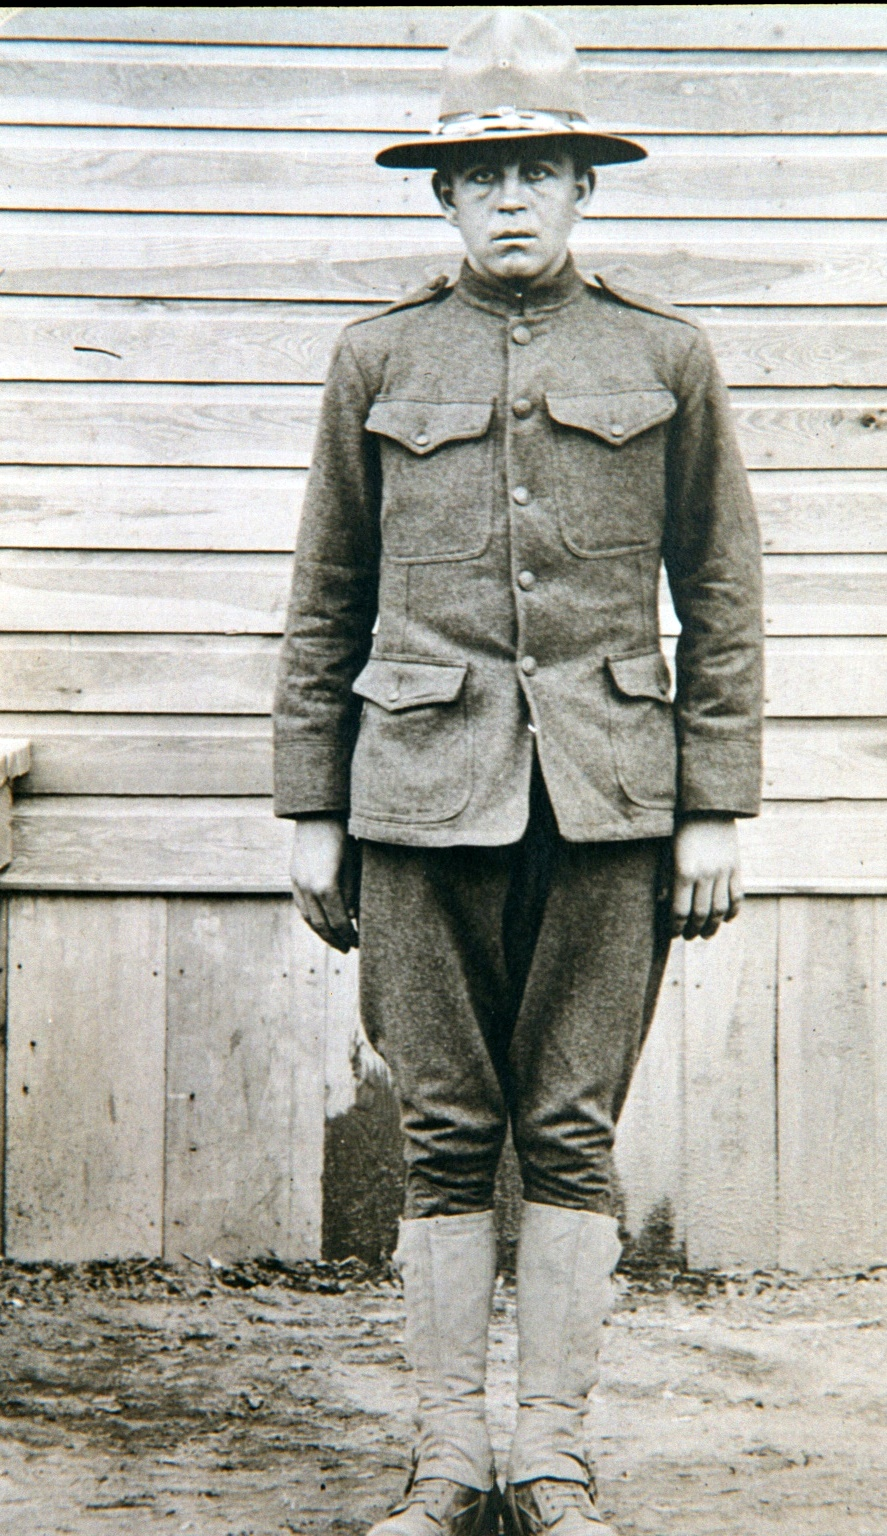 Guy E. Klinger in Uniform, Supply Company, 314th Infantry